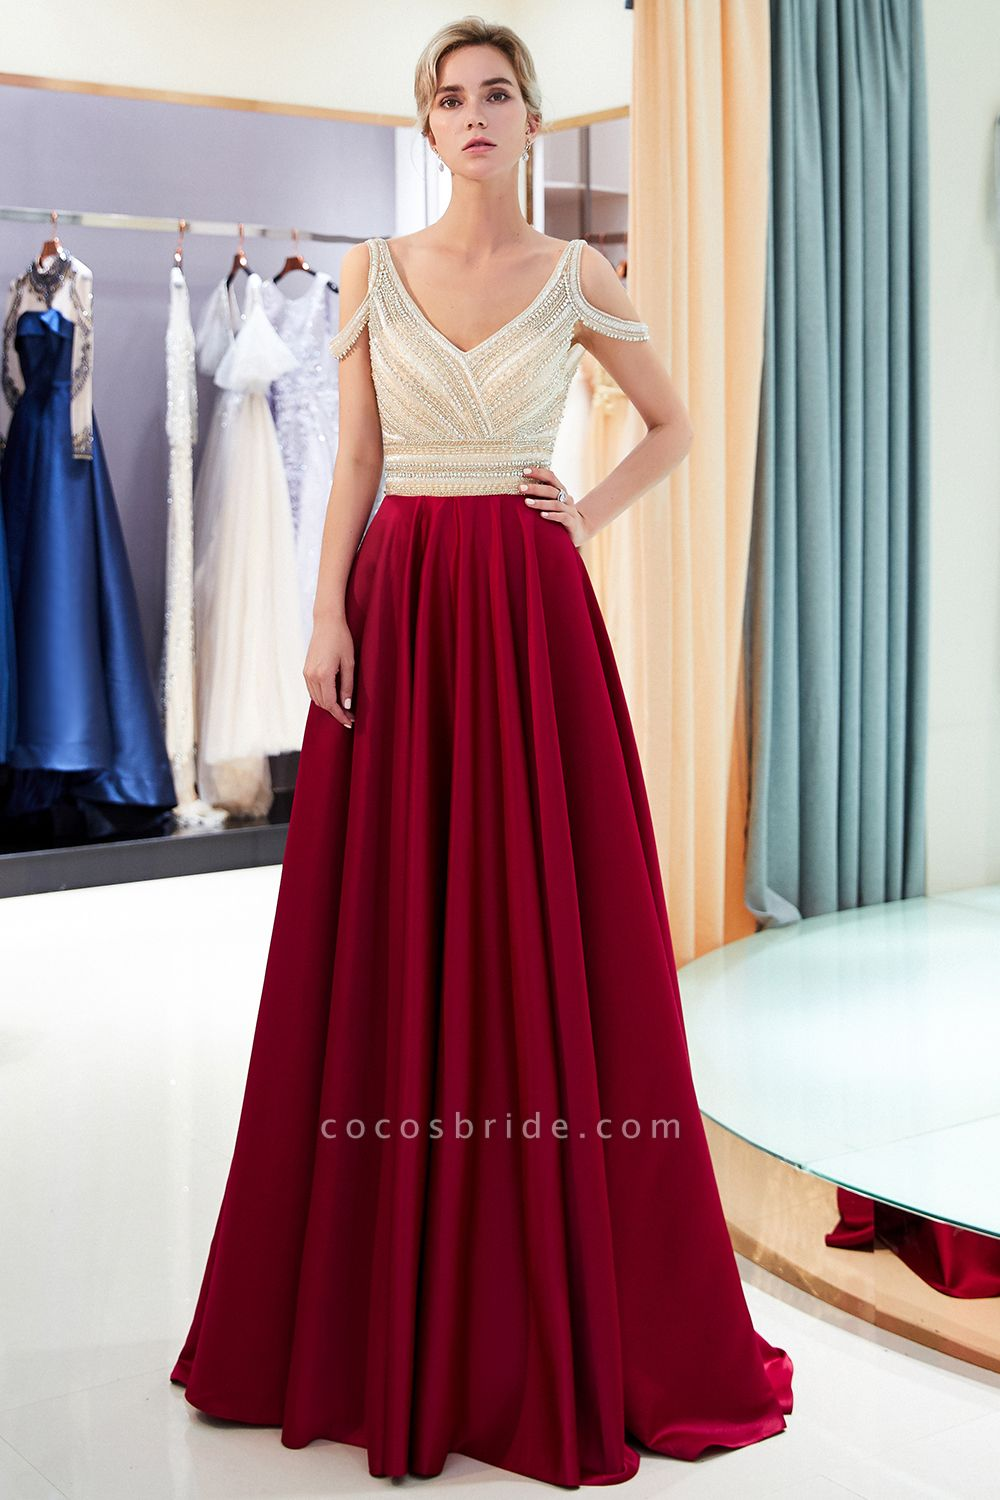 Fascinating V-neck Stretch Satin A-line Prom Dress